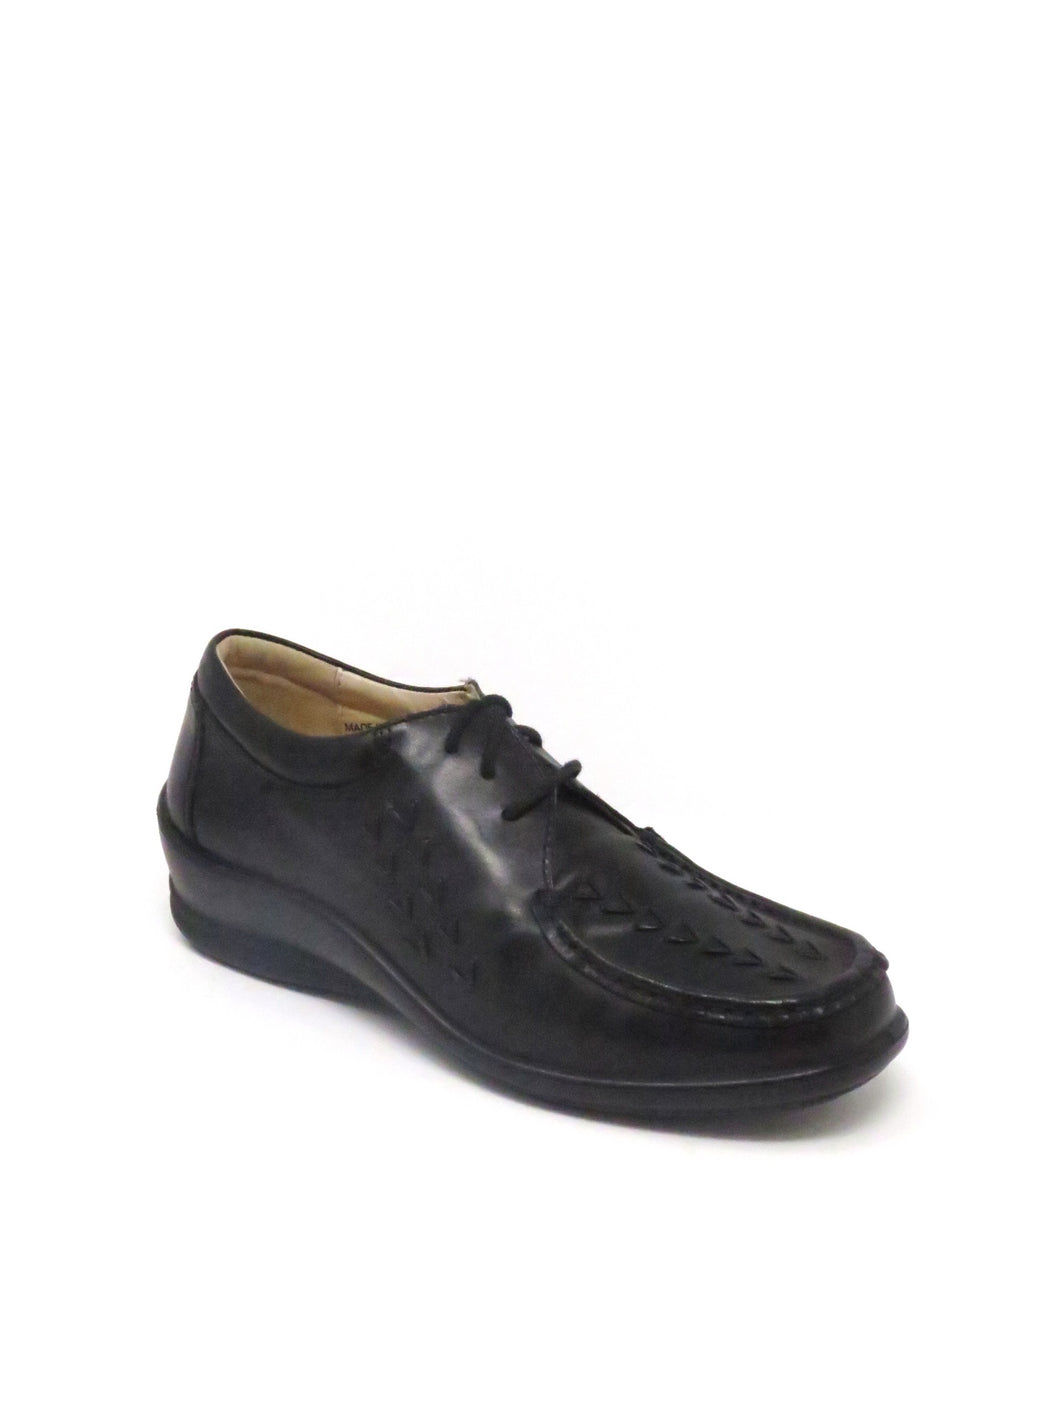 Volks Walkers | 5153-29EEE | Dress Shoe | Black